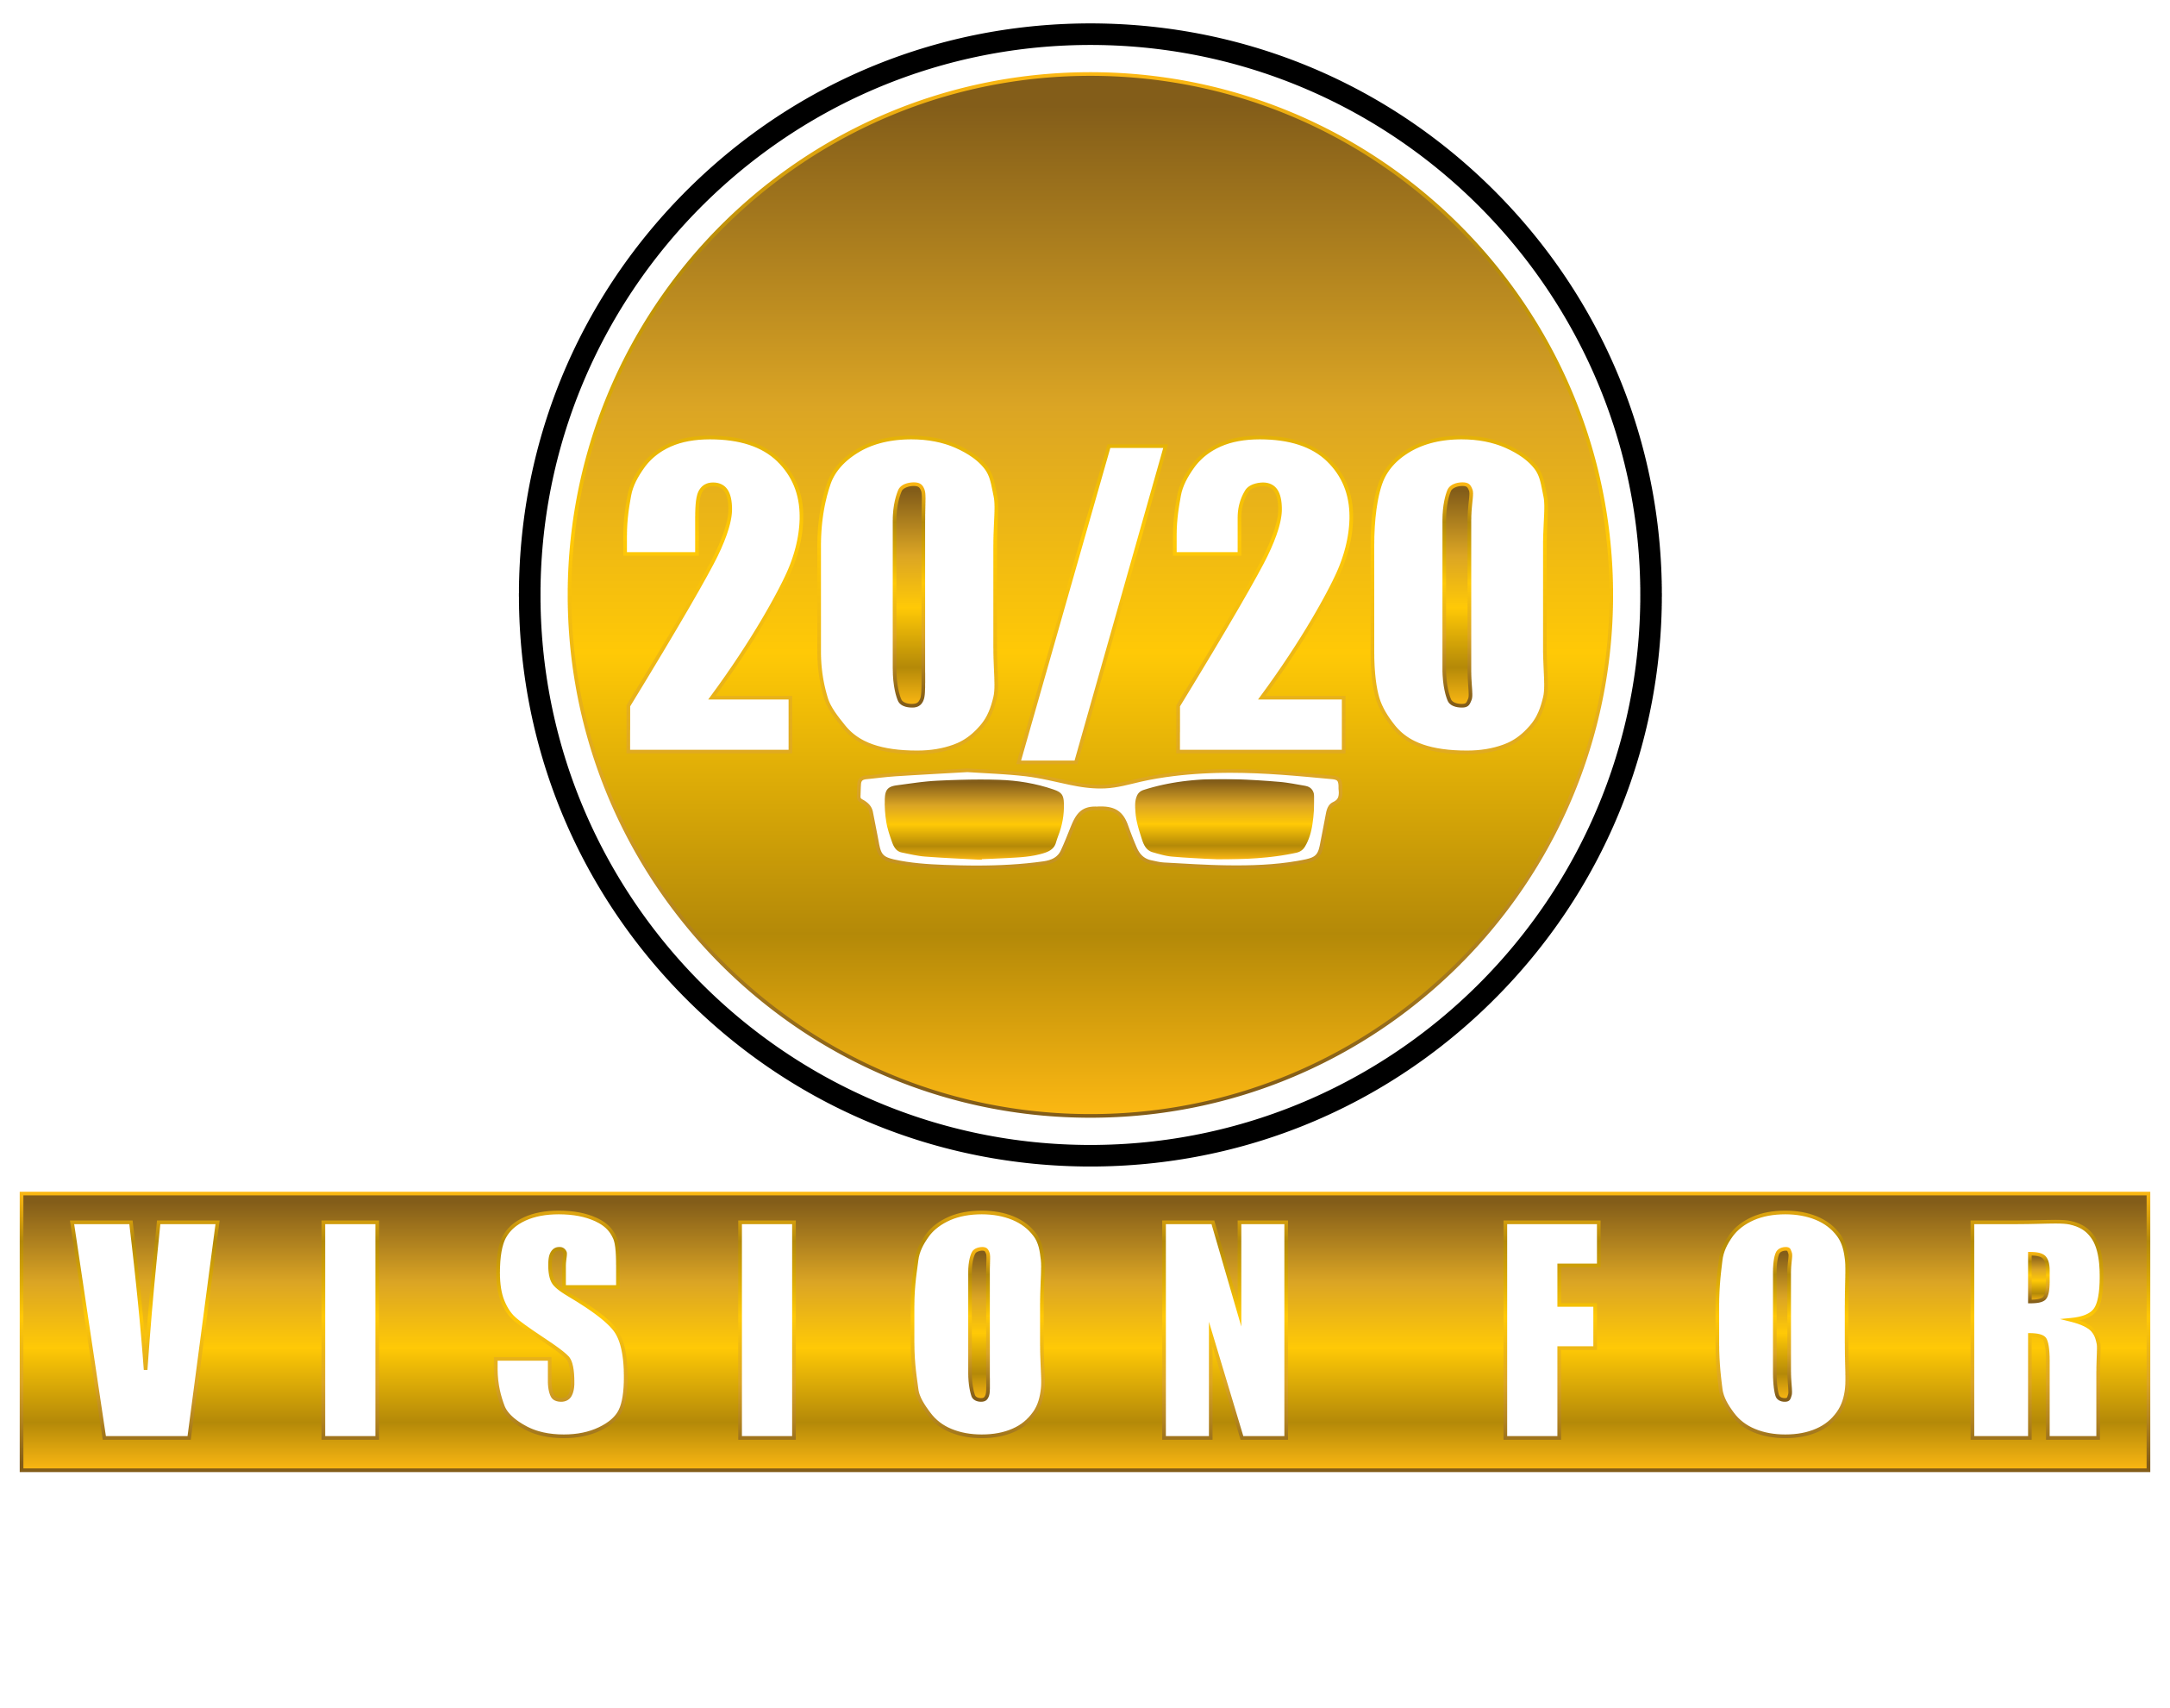 20/20 Vision for Success Coaching